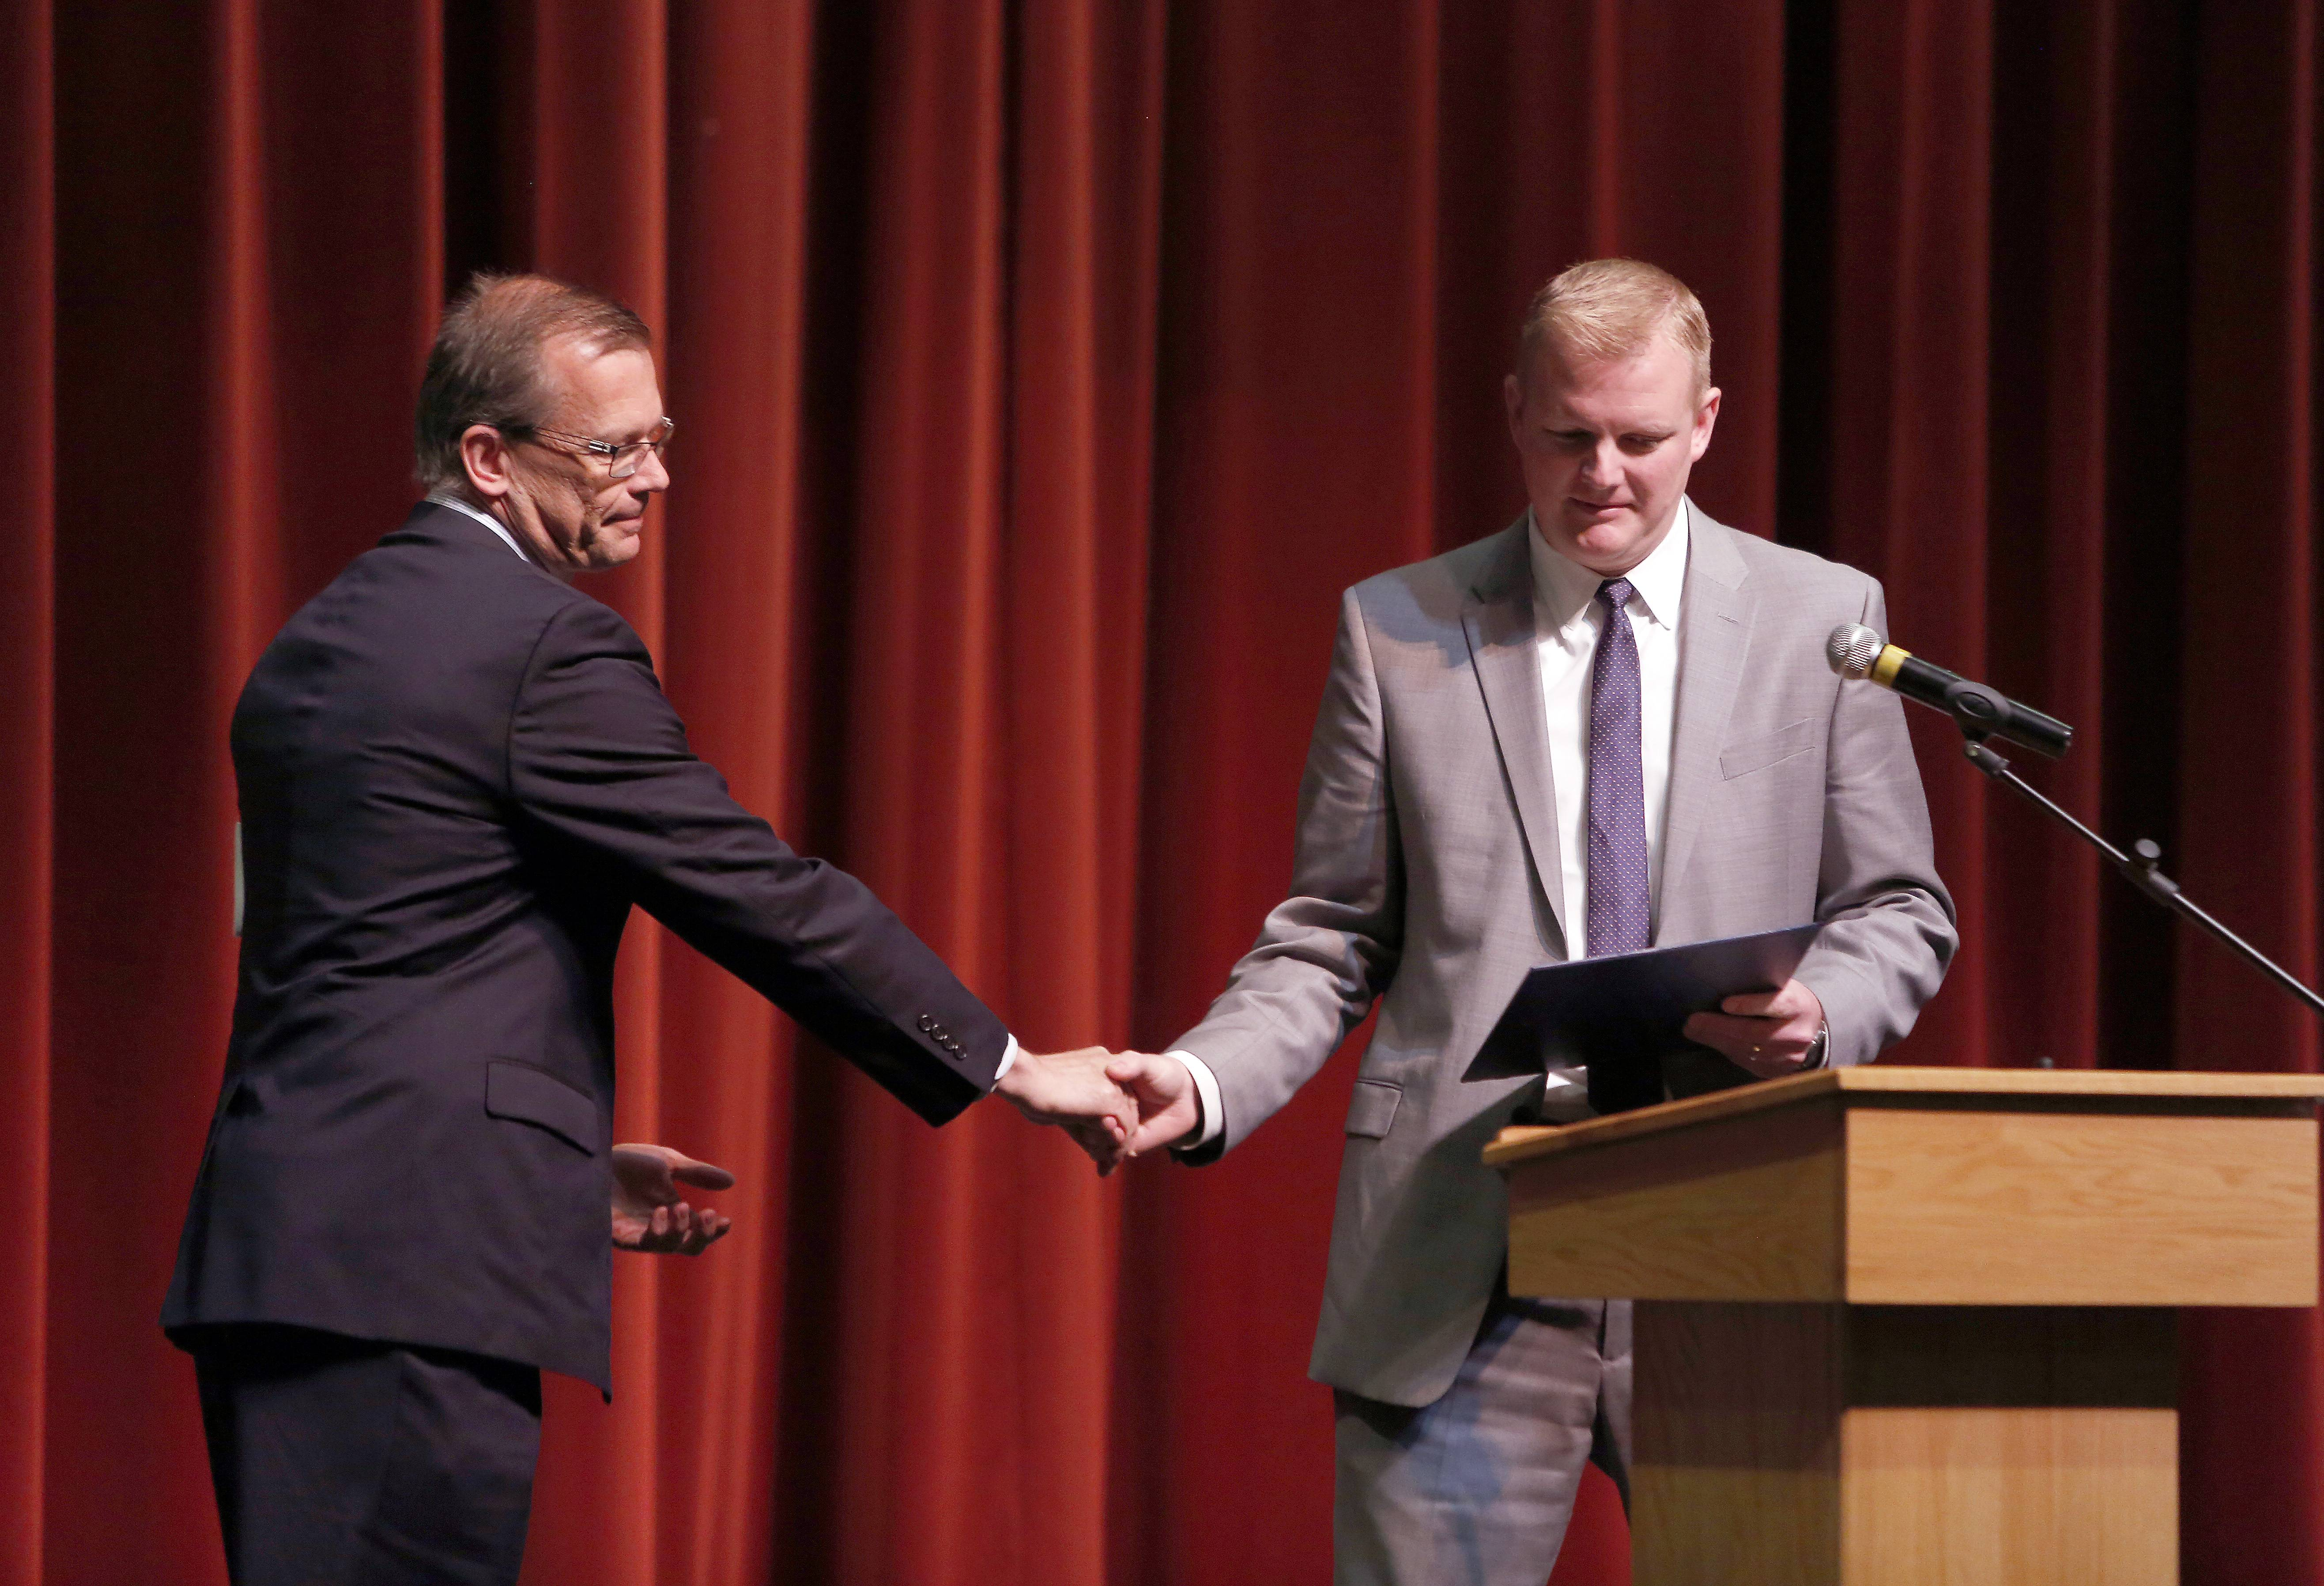 Illinois state schools Superintendent Christopher Koch, left, presented Nicholson Elementary School Principal Dave Russell with an Academic Improvement award Thursday.